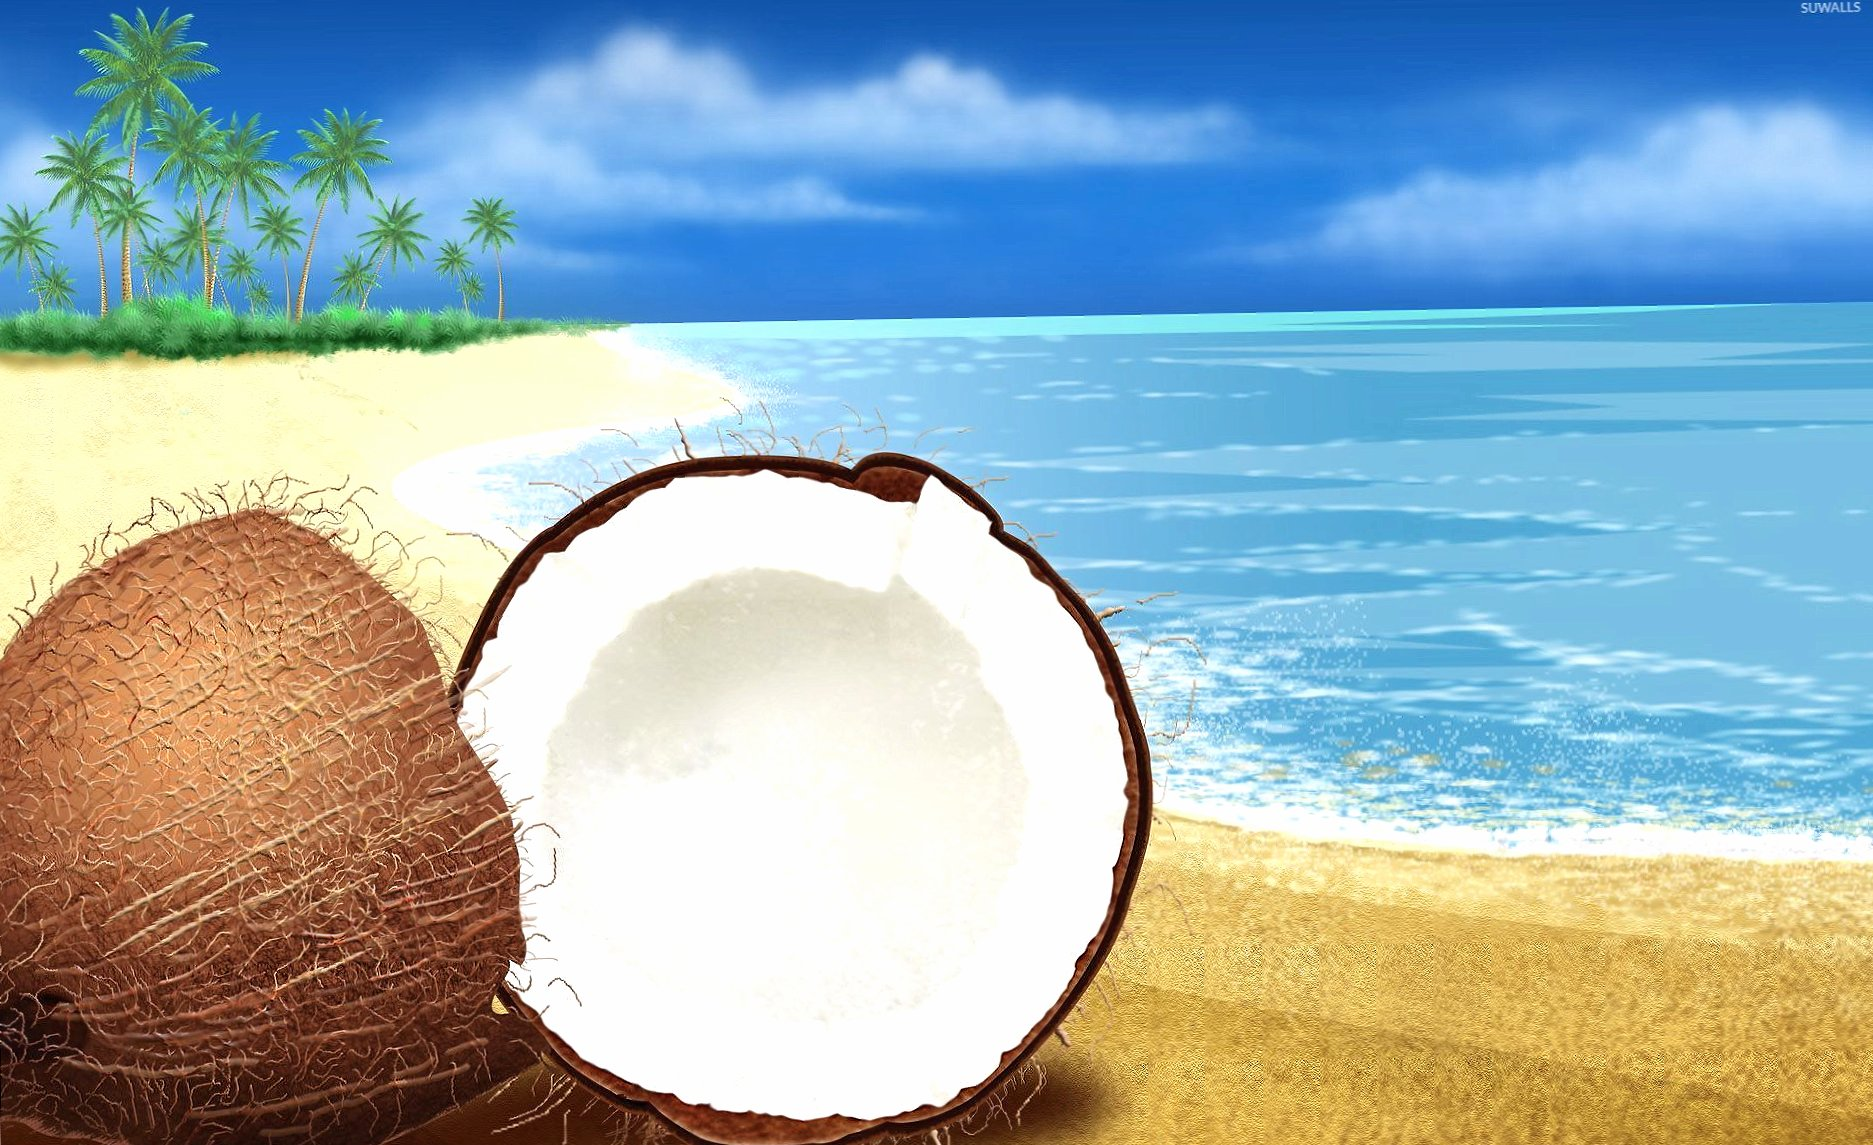 Coconut cut in half on the beach wallpapers HD quality